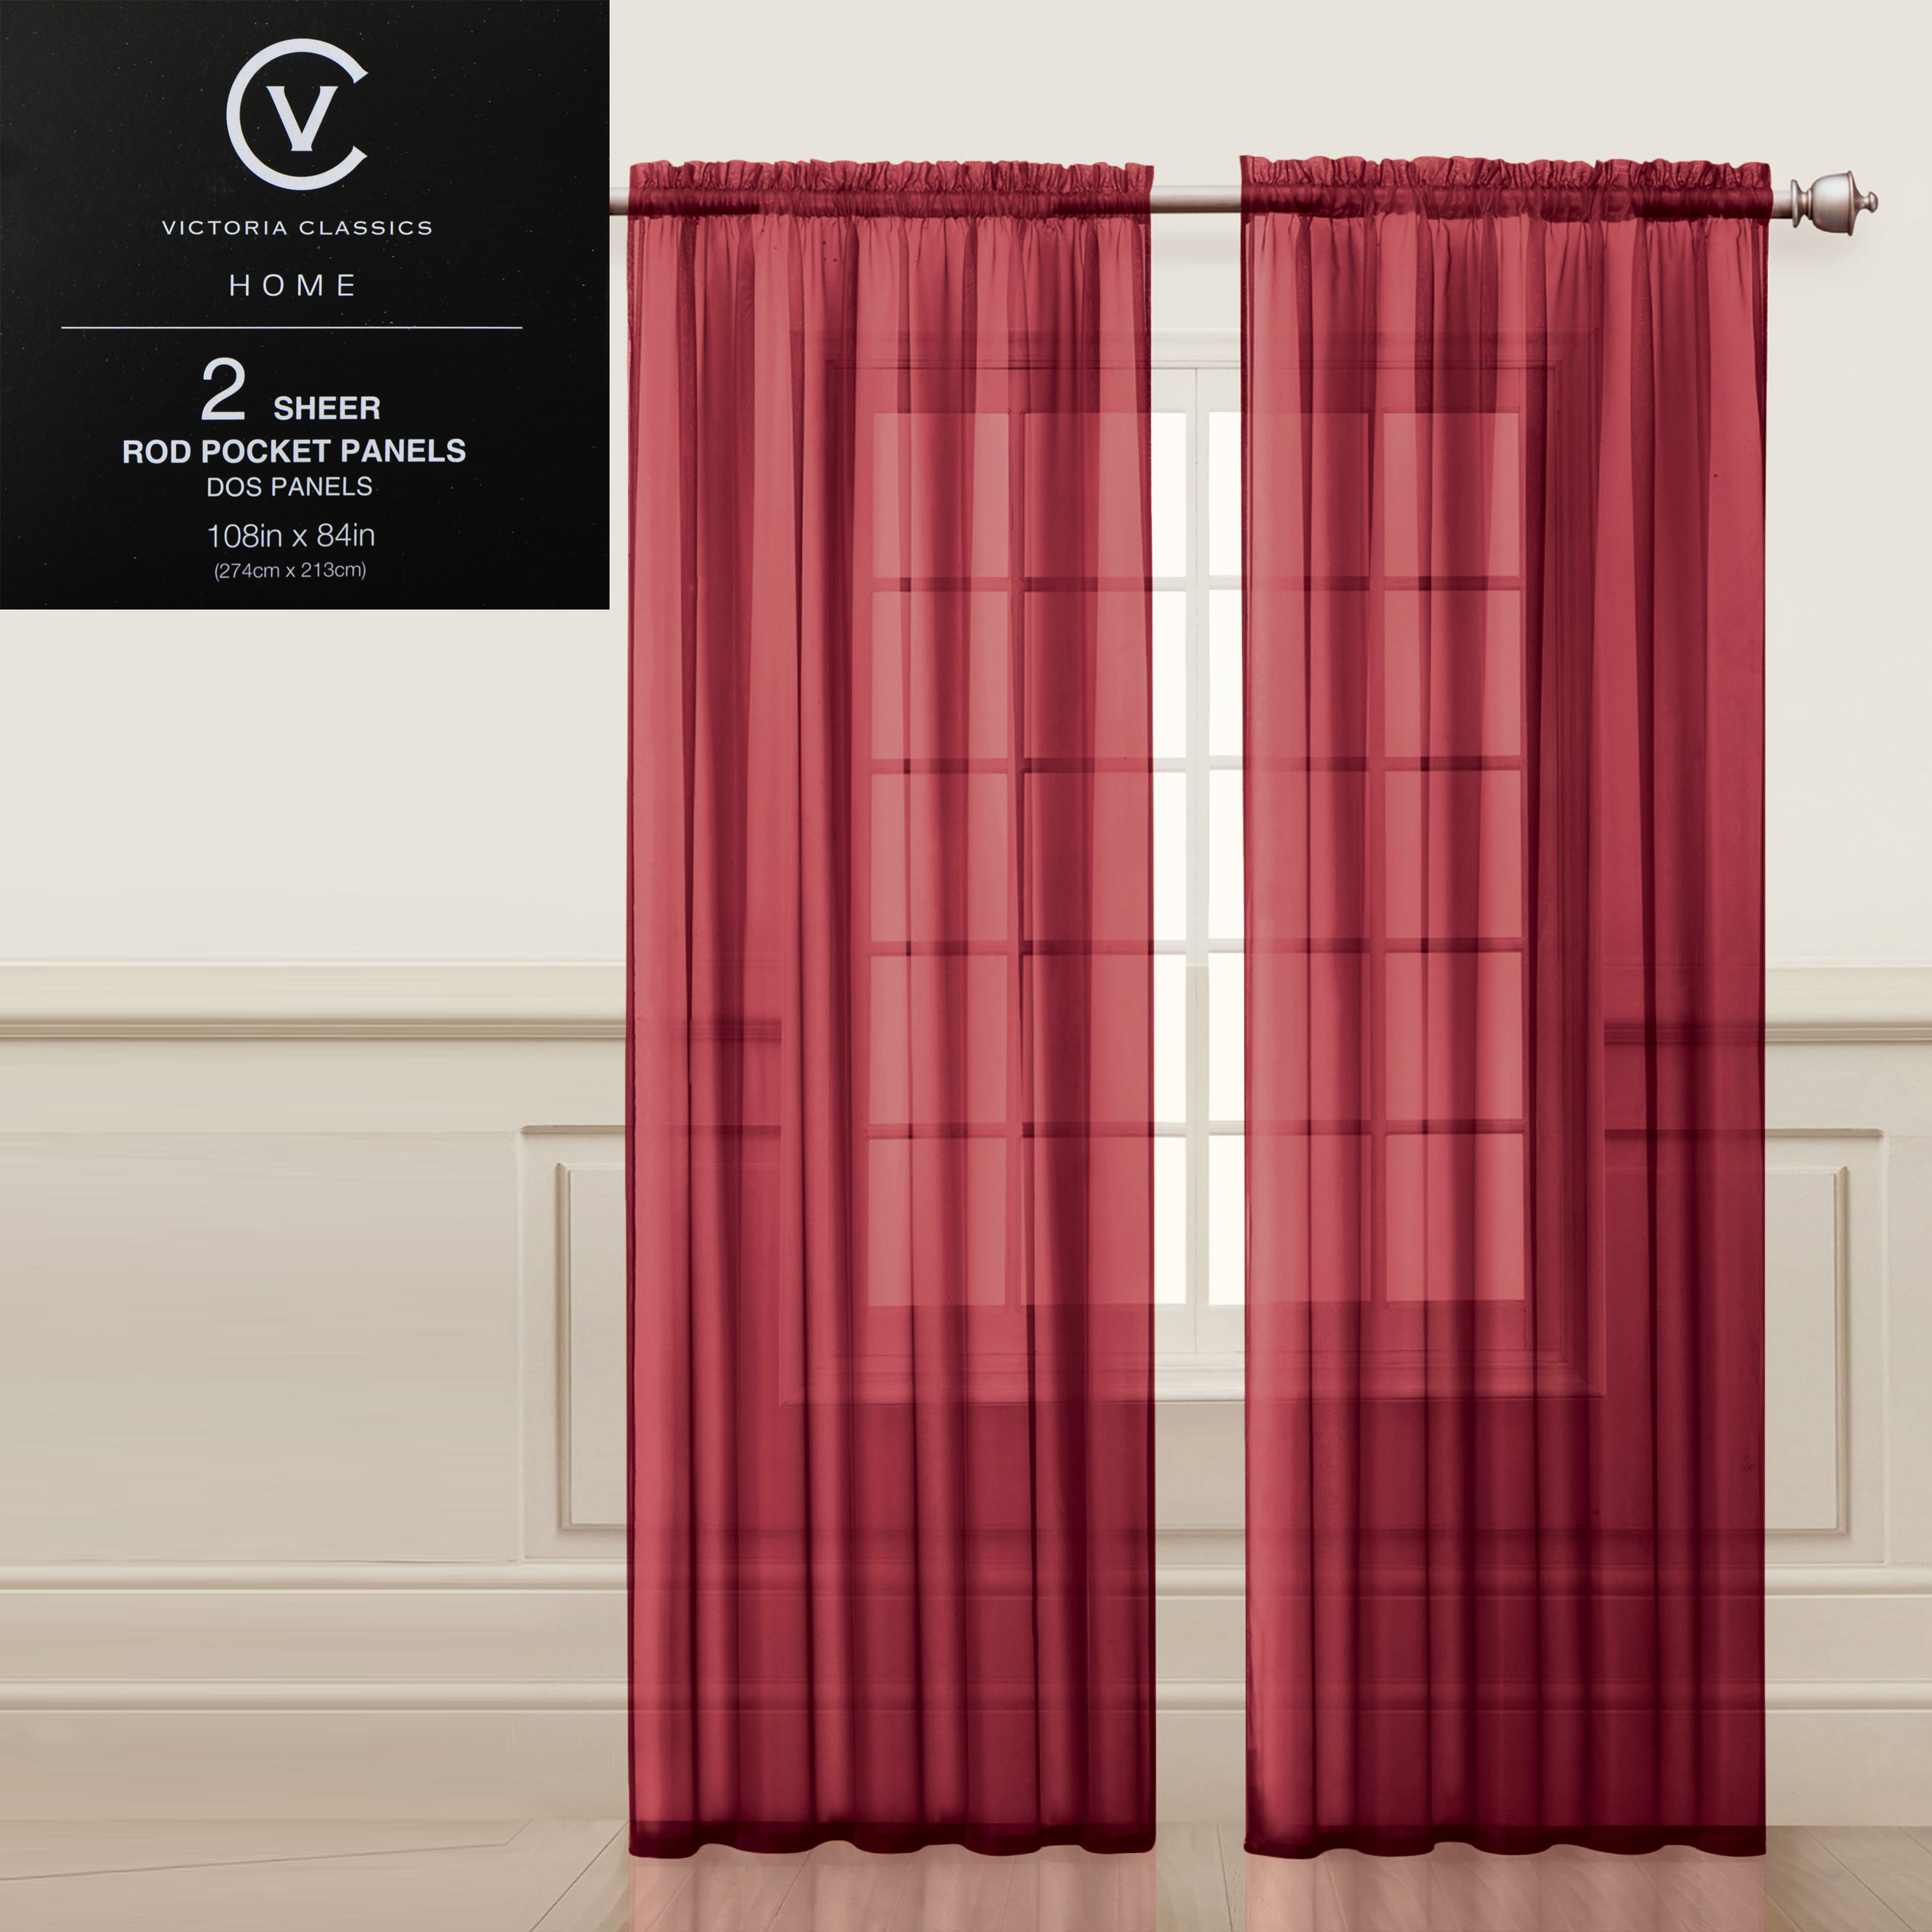 Two 2 brick red sheer rod pocket window curtain panels 108w x 84l fully hemmed walmart com